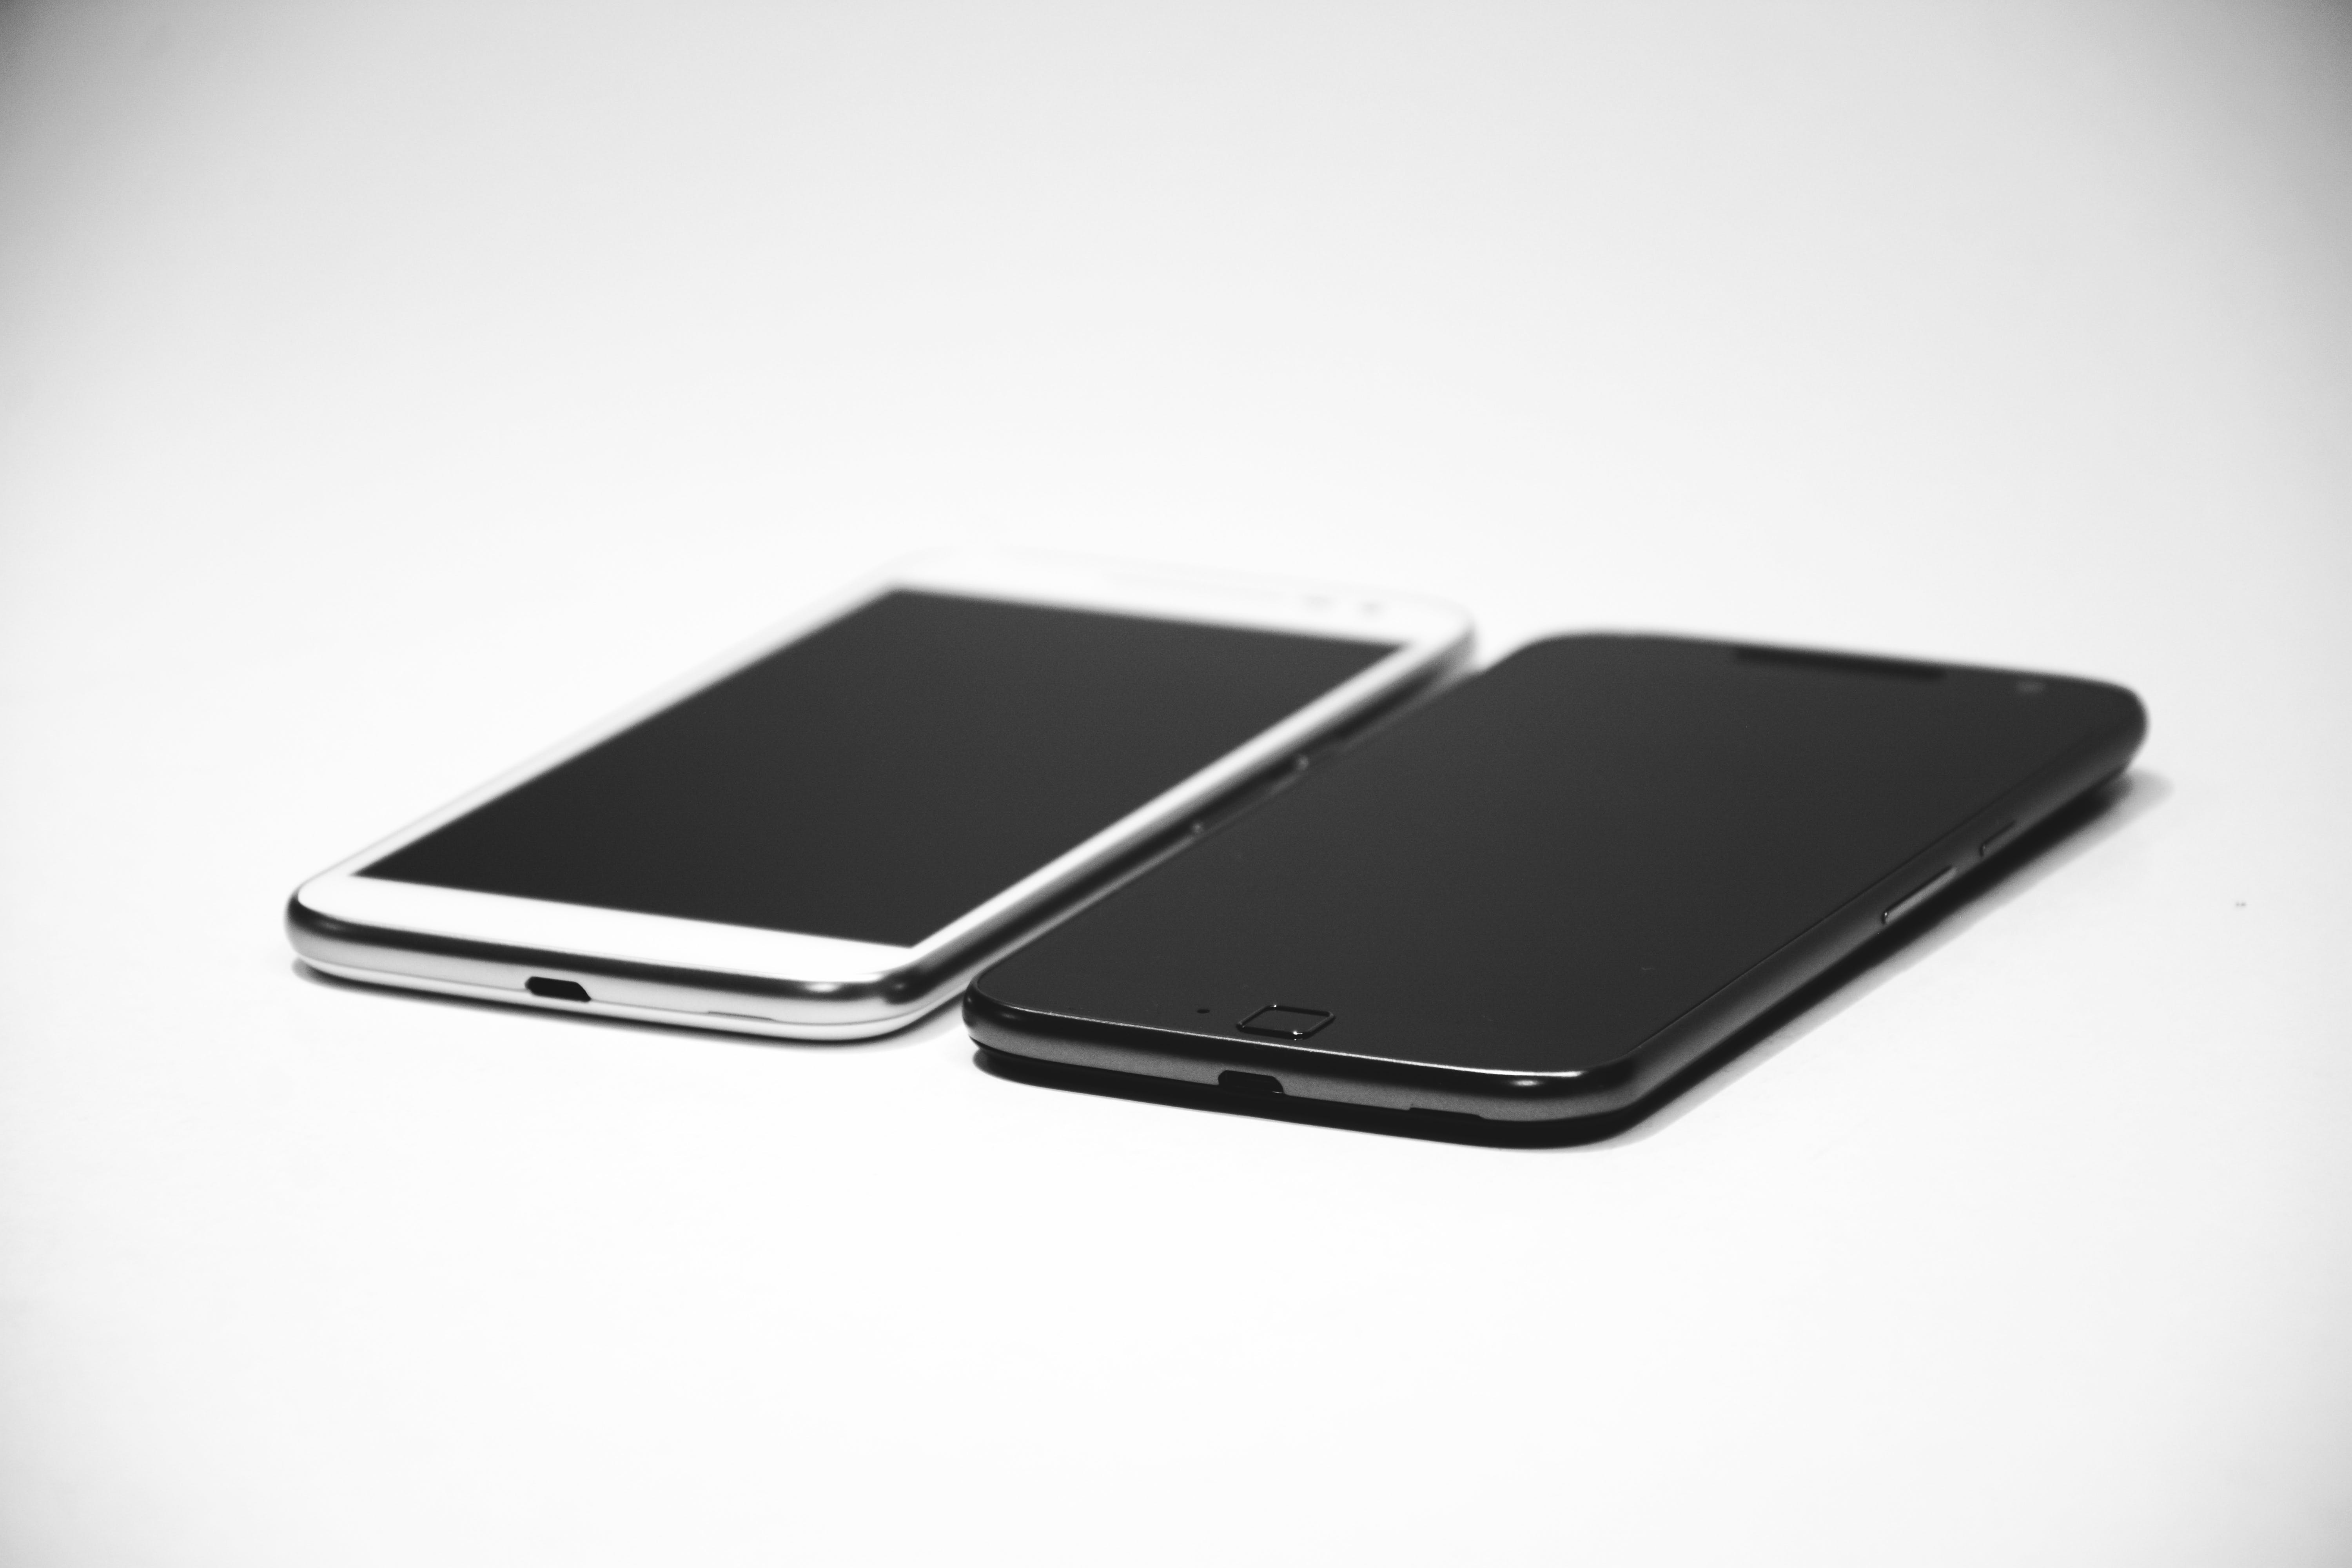 White Android Smartphone Near Black Android Smartphone